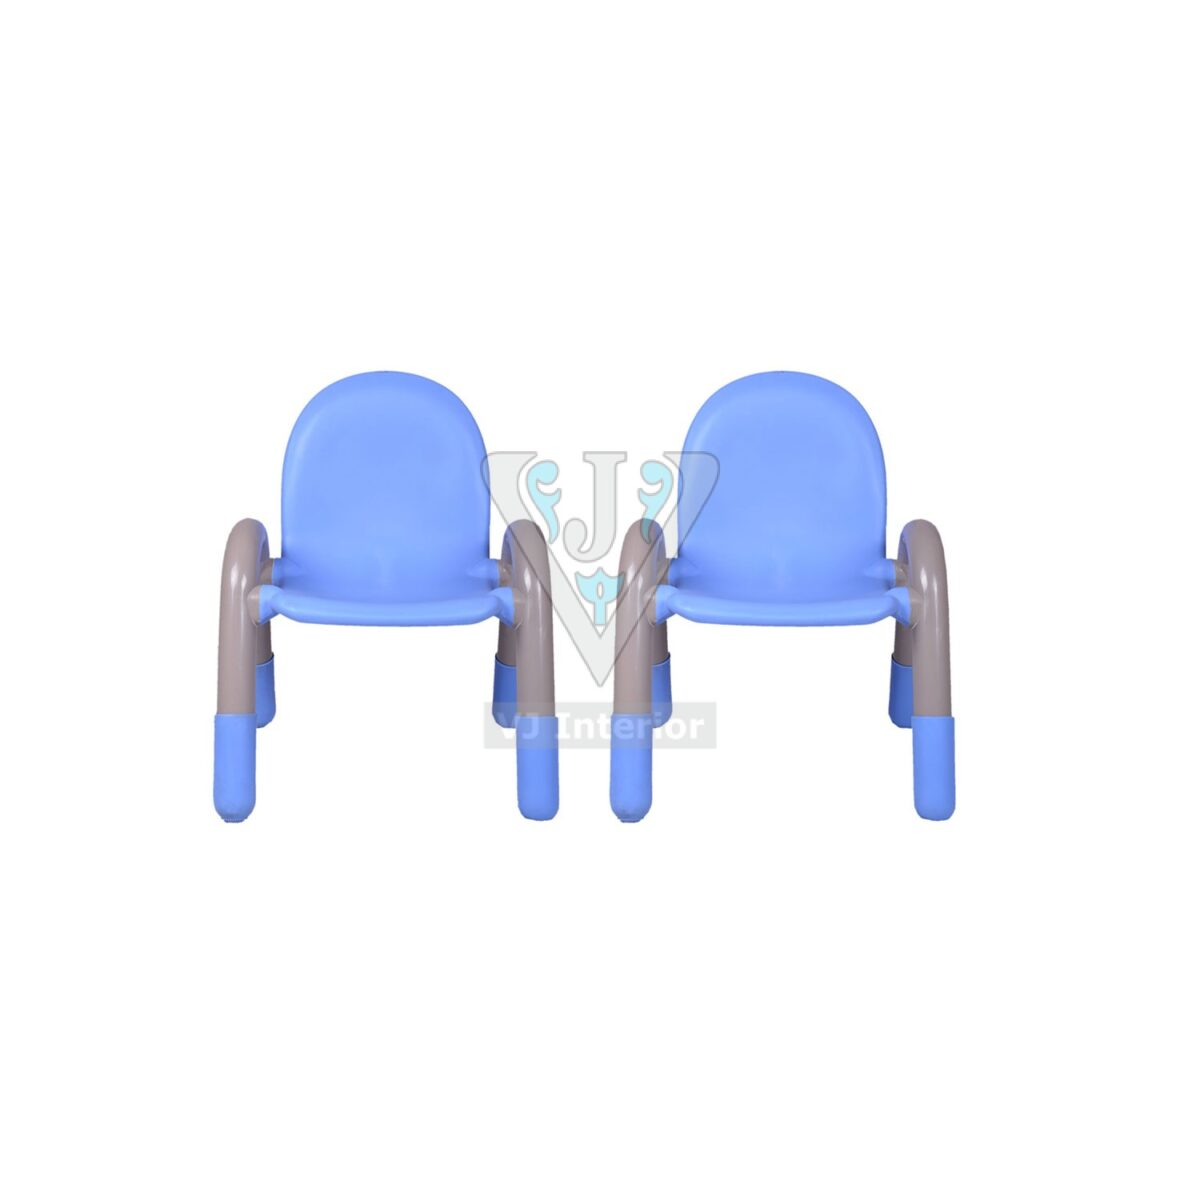 THE CHICO ENGINEERING PLASTIC KIDS CHAIR BLUE